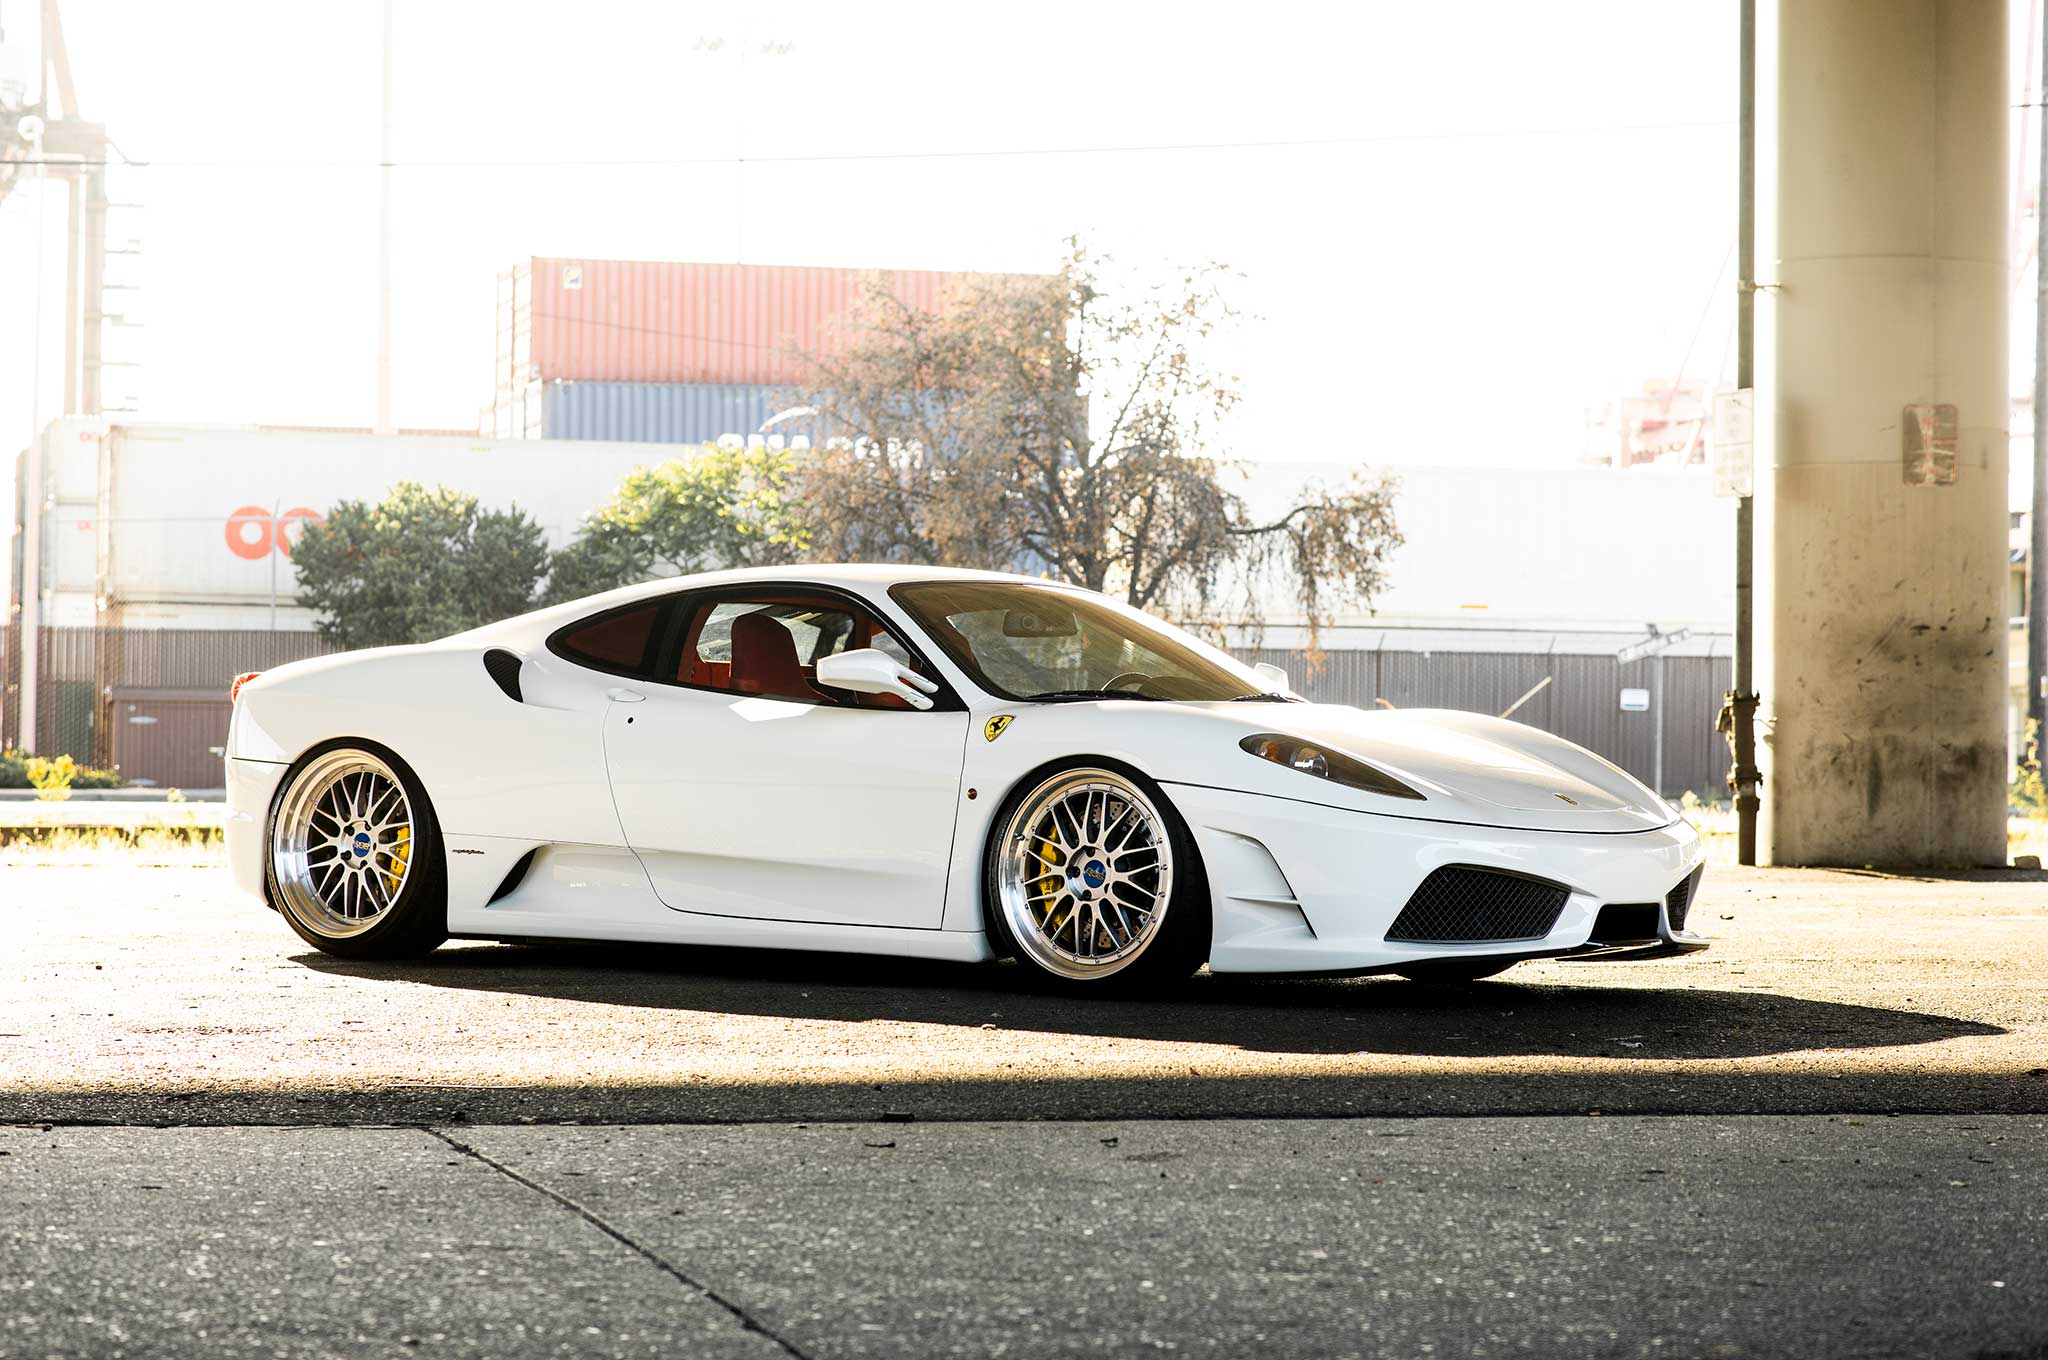 2005 Ferrari F430 The Best Looking F430 Courtesy Of Air Ride Bbs Lms Amp More